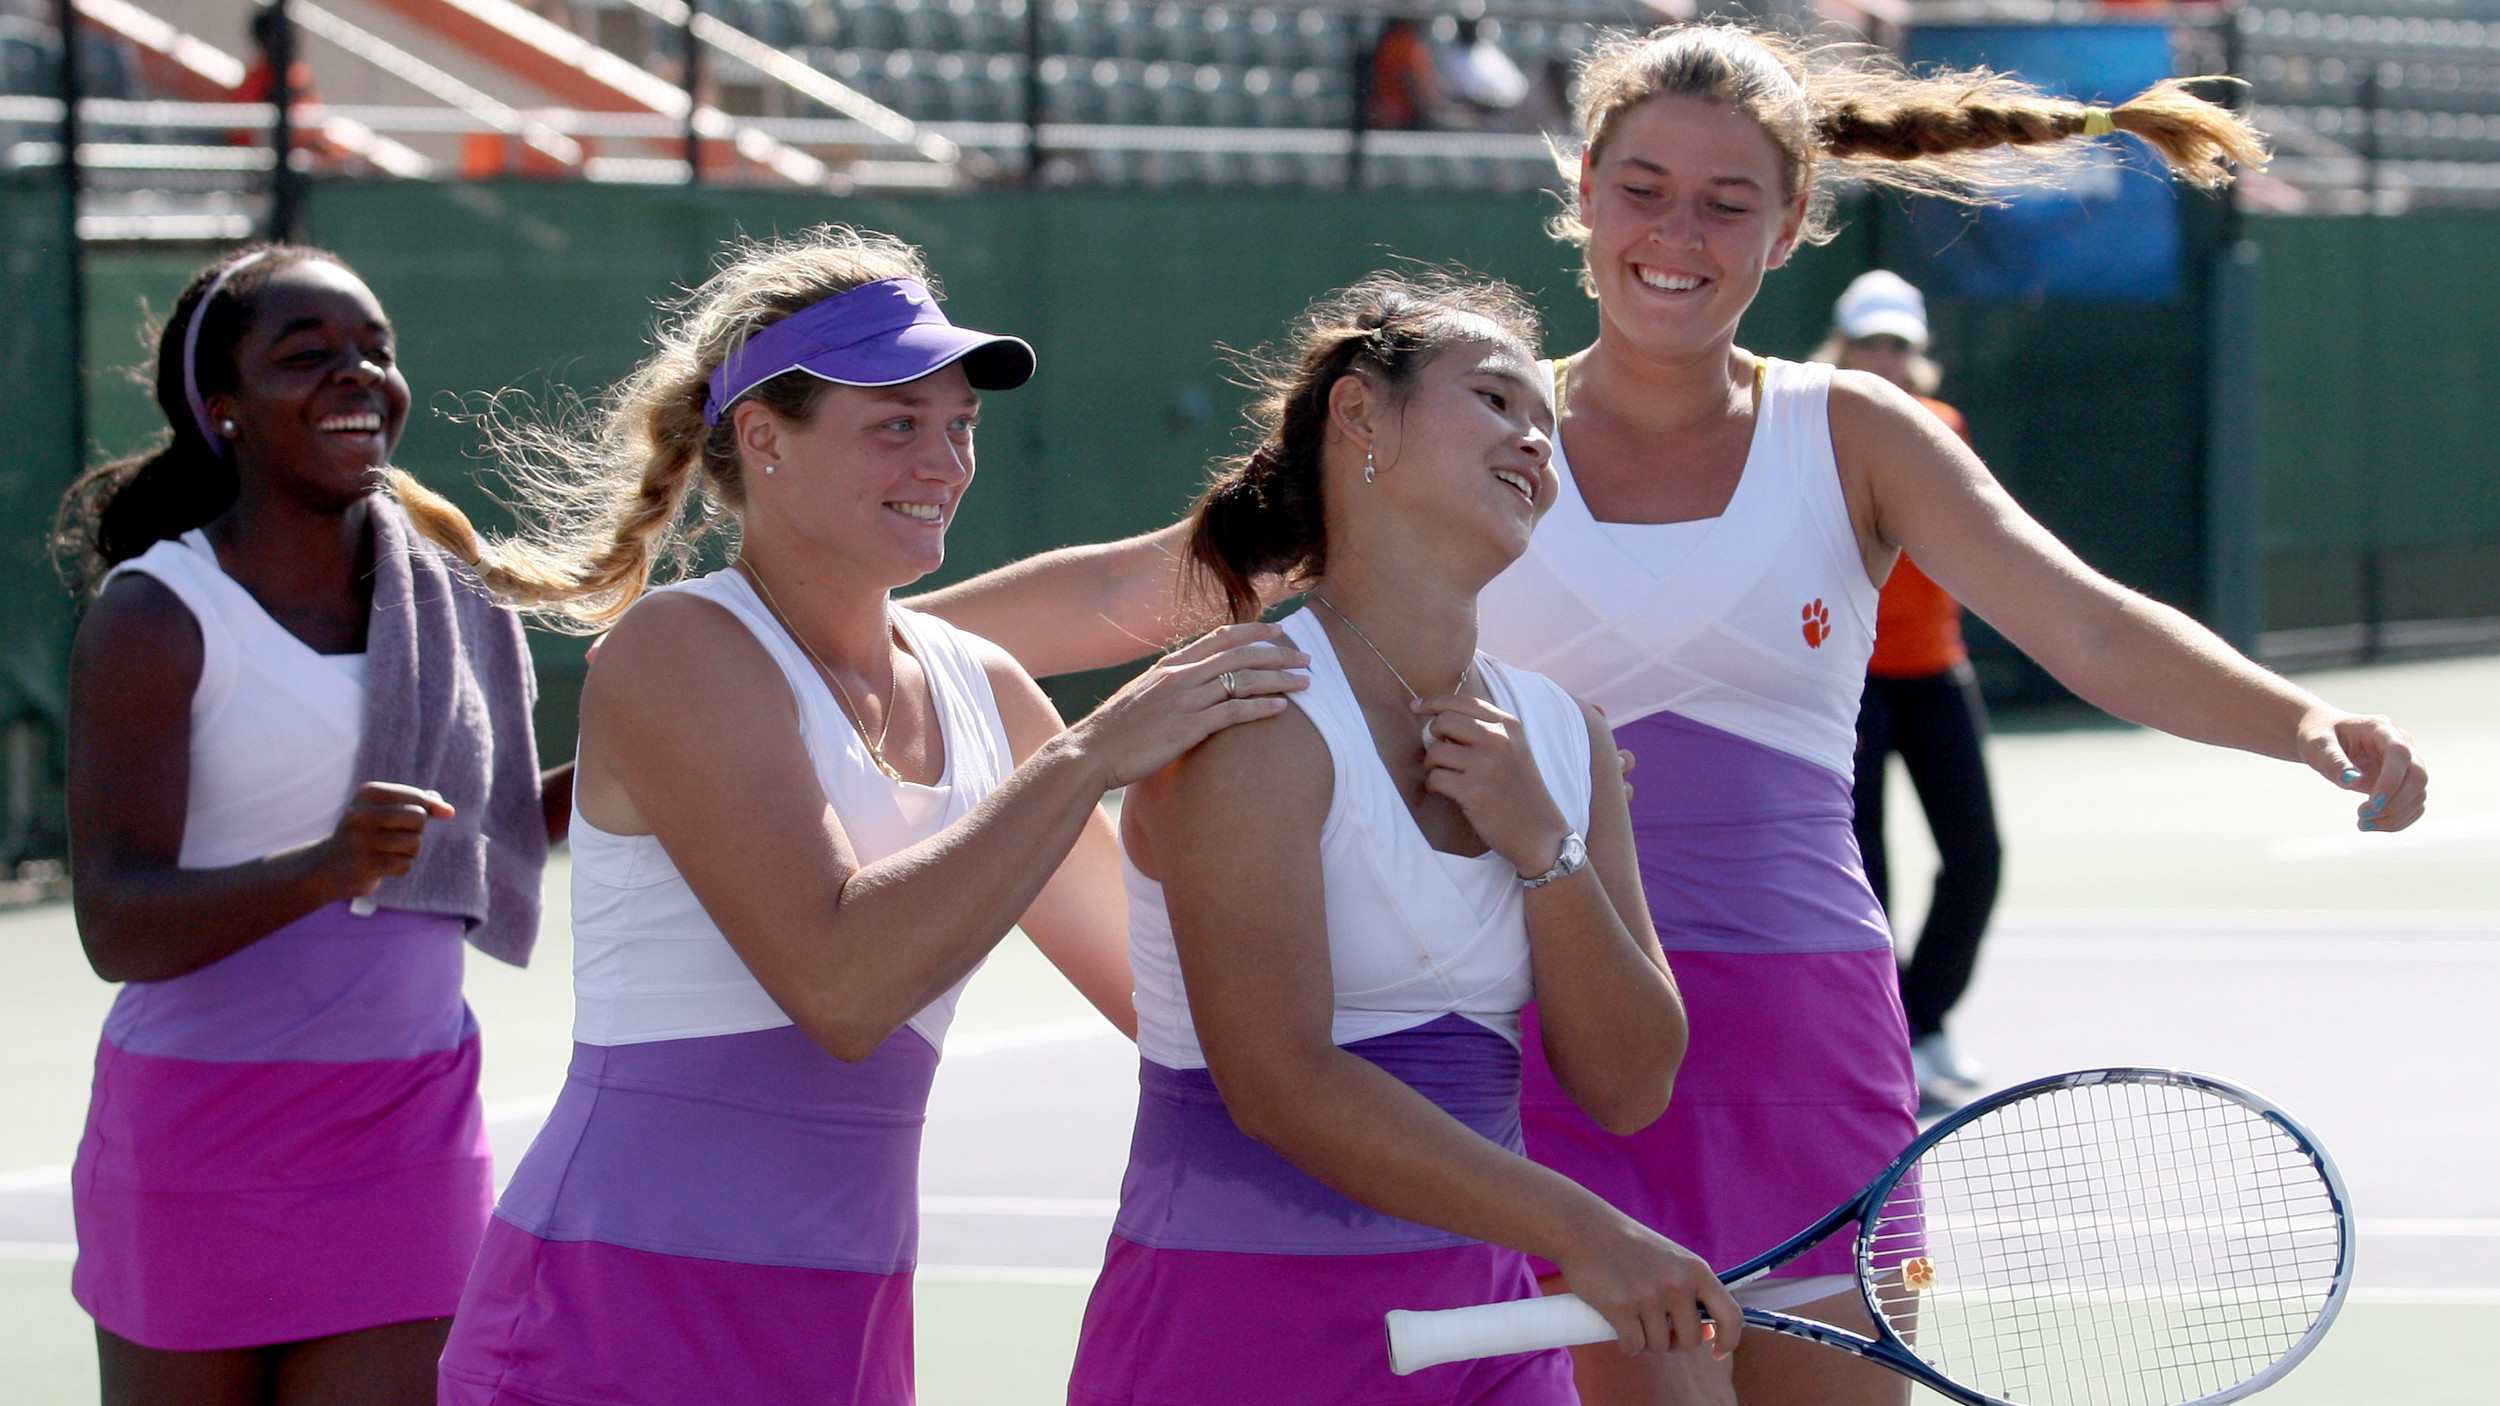 Bea-lieve it! Tigers Move on to NCAA Third Round